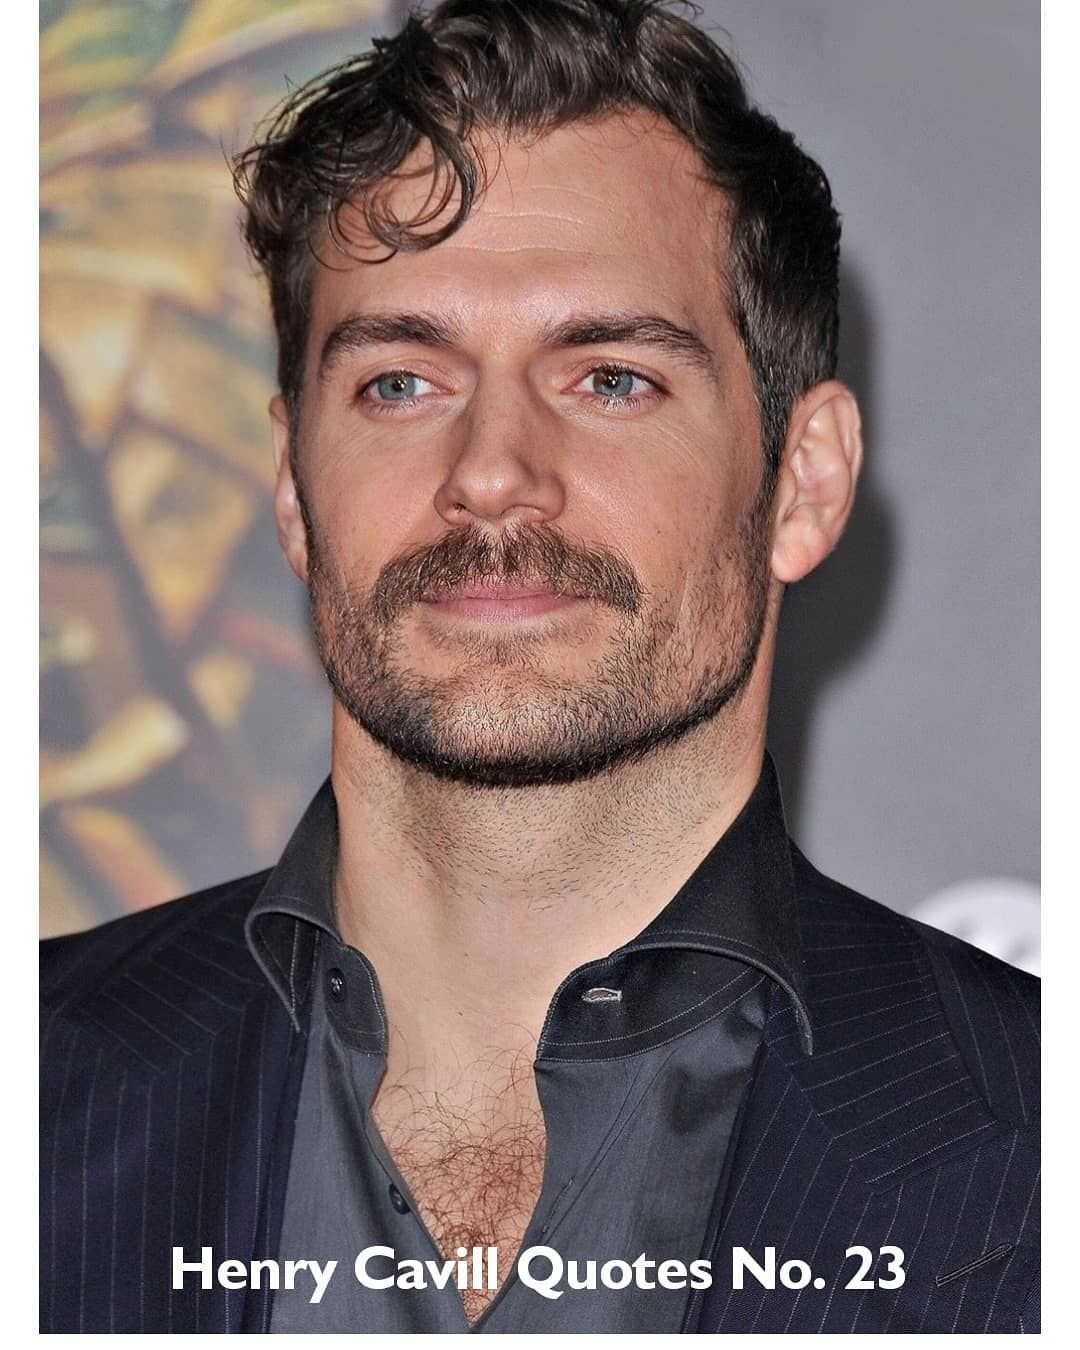 Henry Cavill Quotes No 23